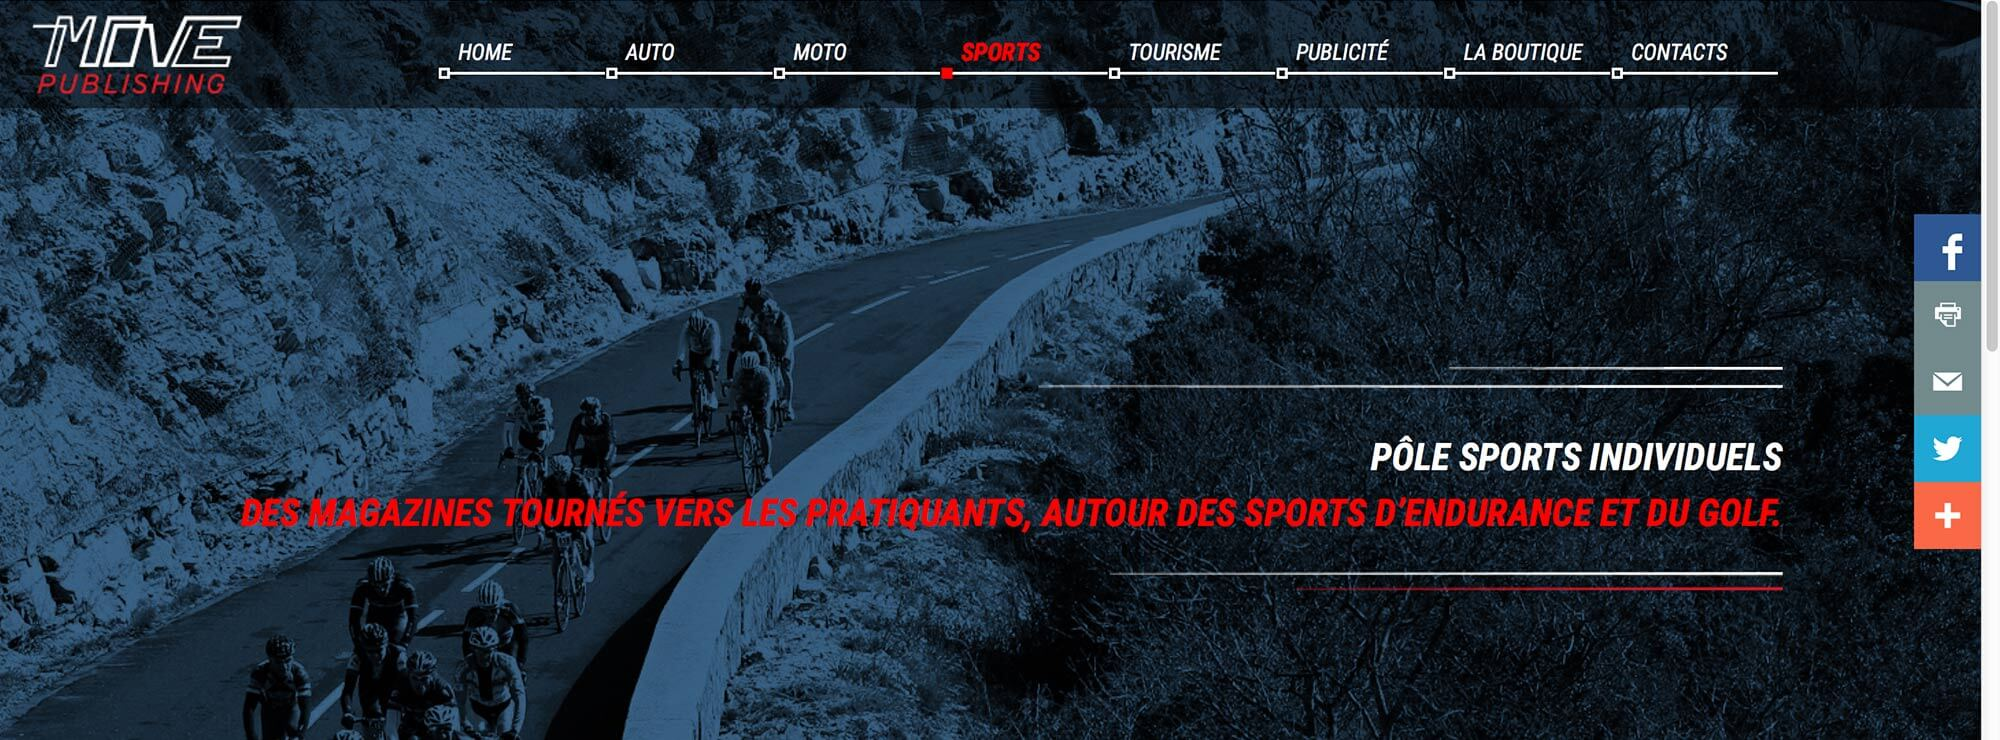 10 motor presse move publishing sports site.jpg